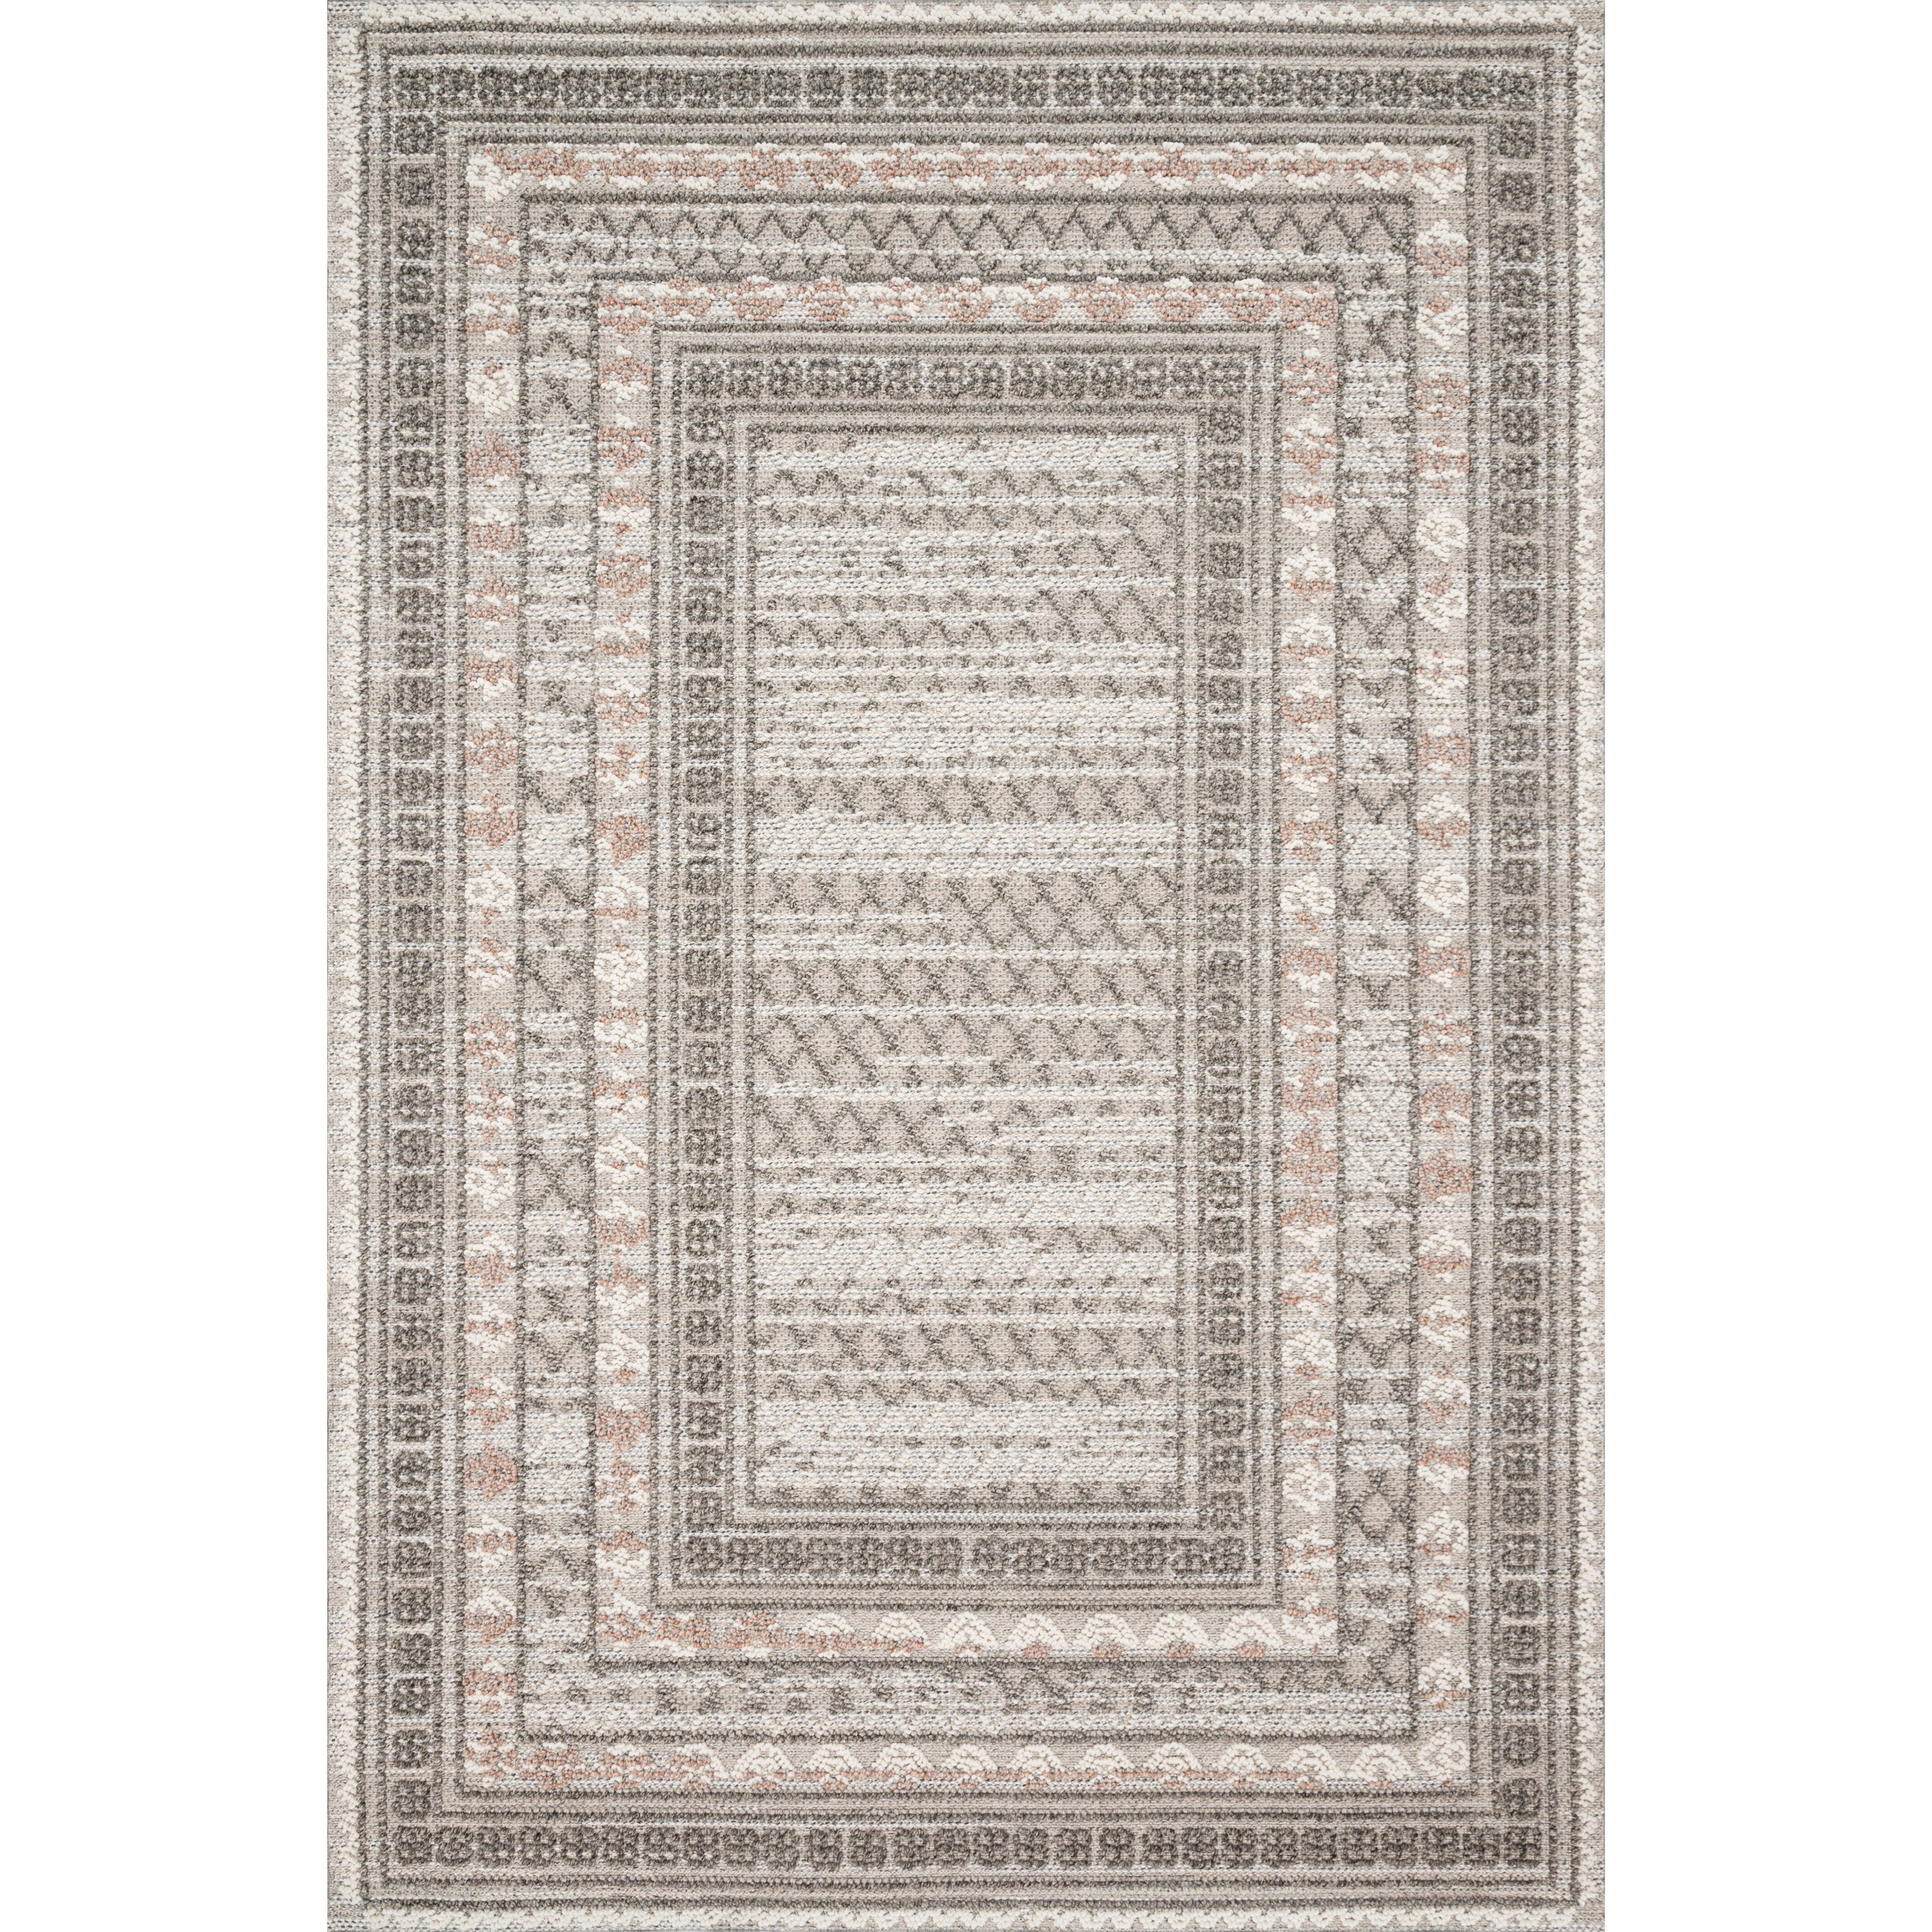 """Cole 2'1"""" x 3'4"""" Grey / Multi Rug by Loloi Rugs at Virginia Furniture Market"""